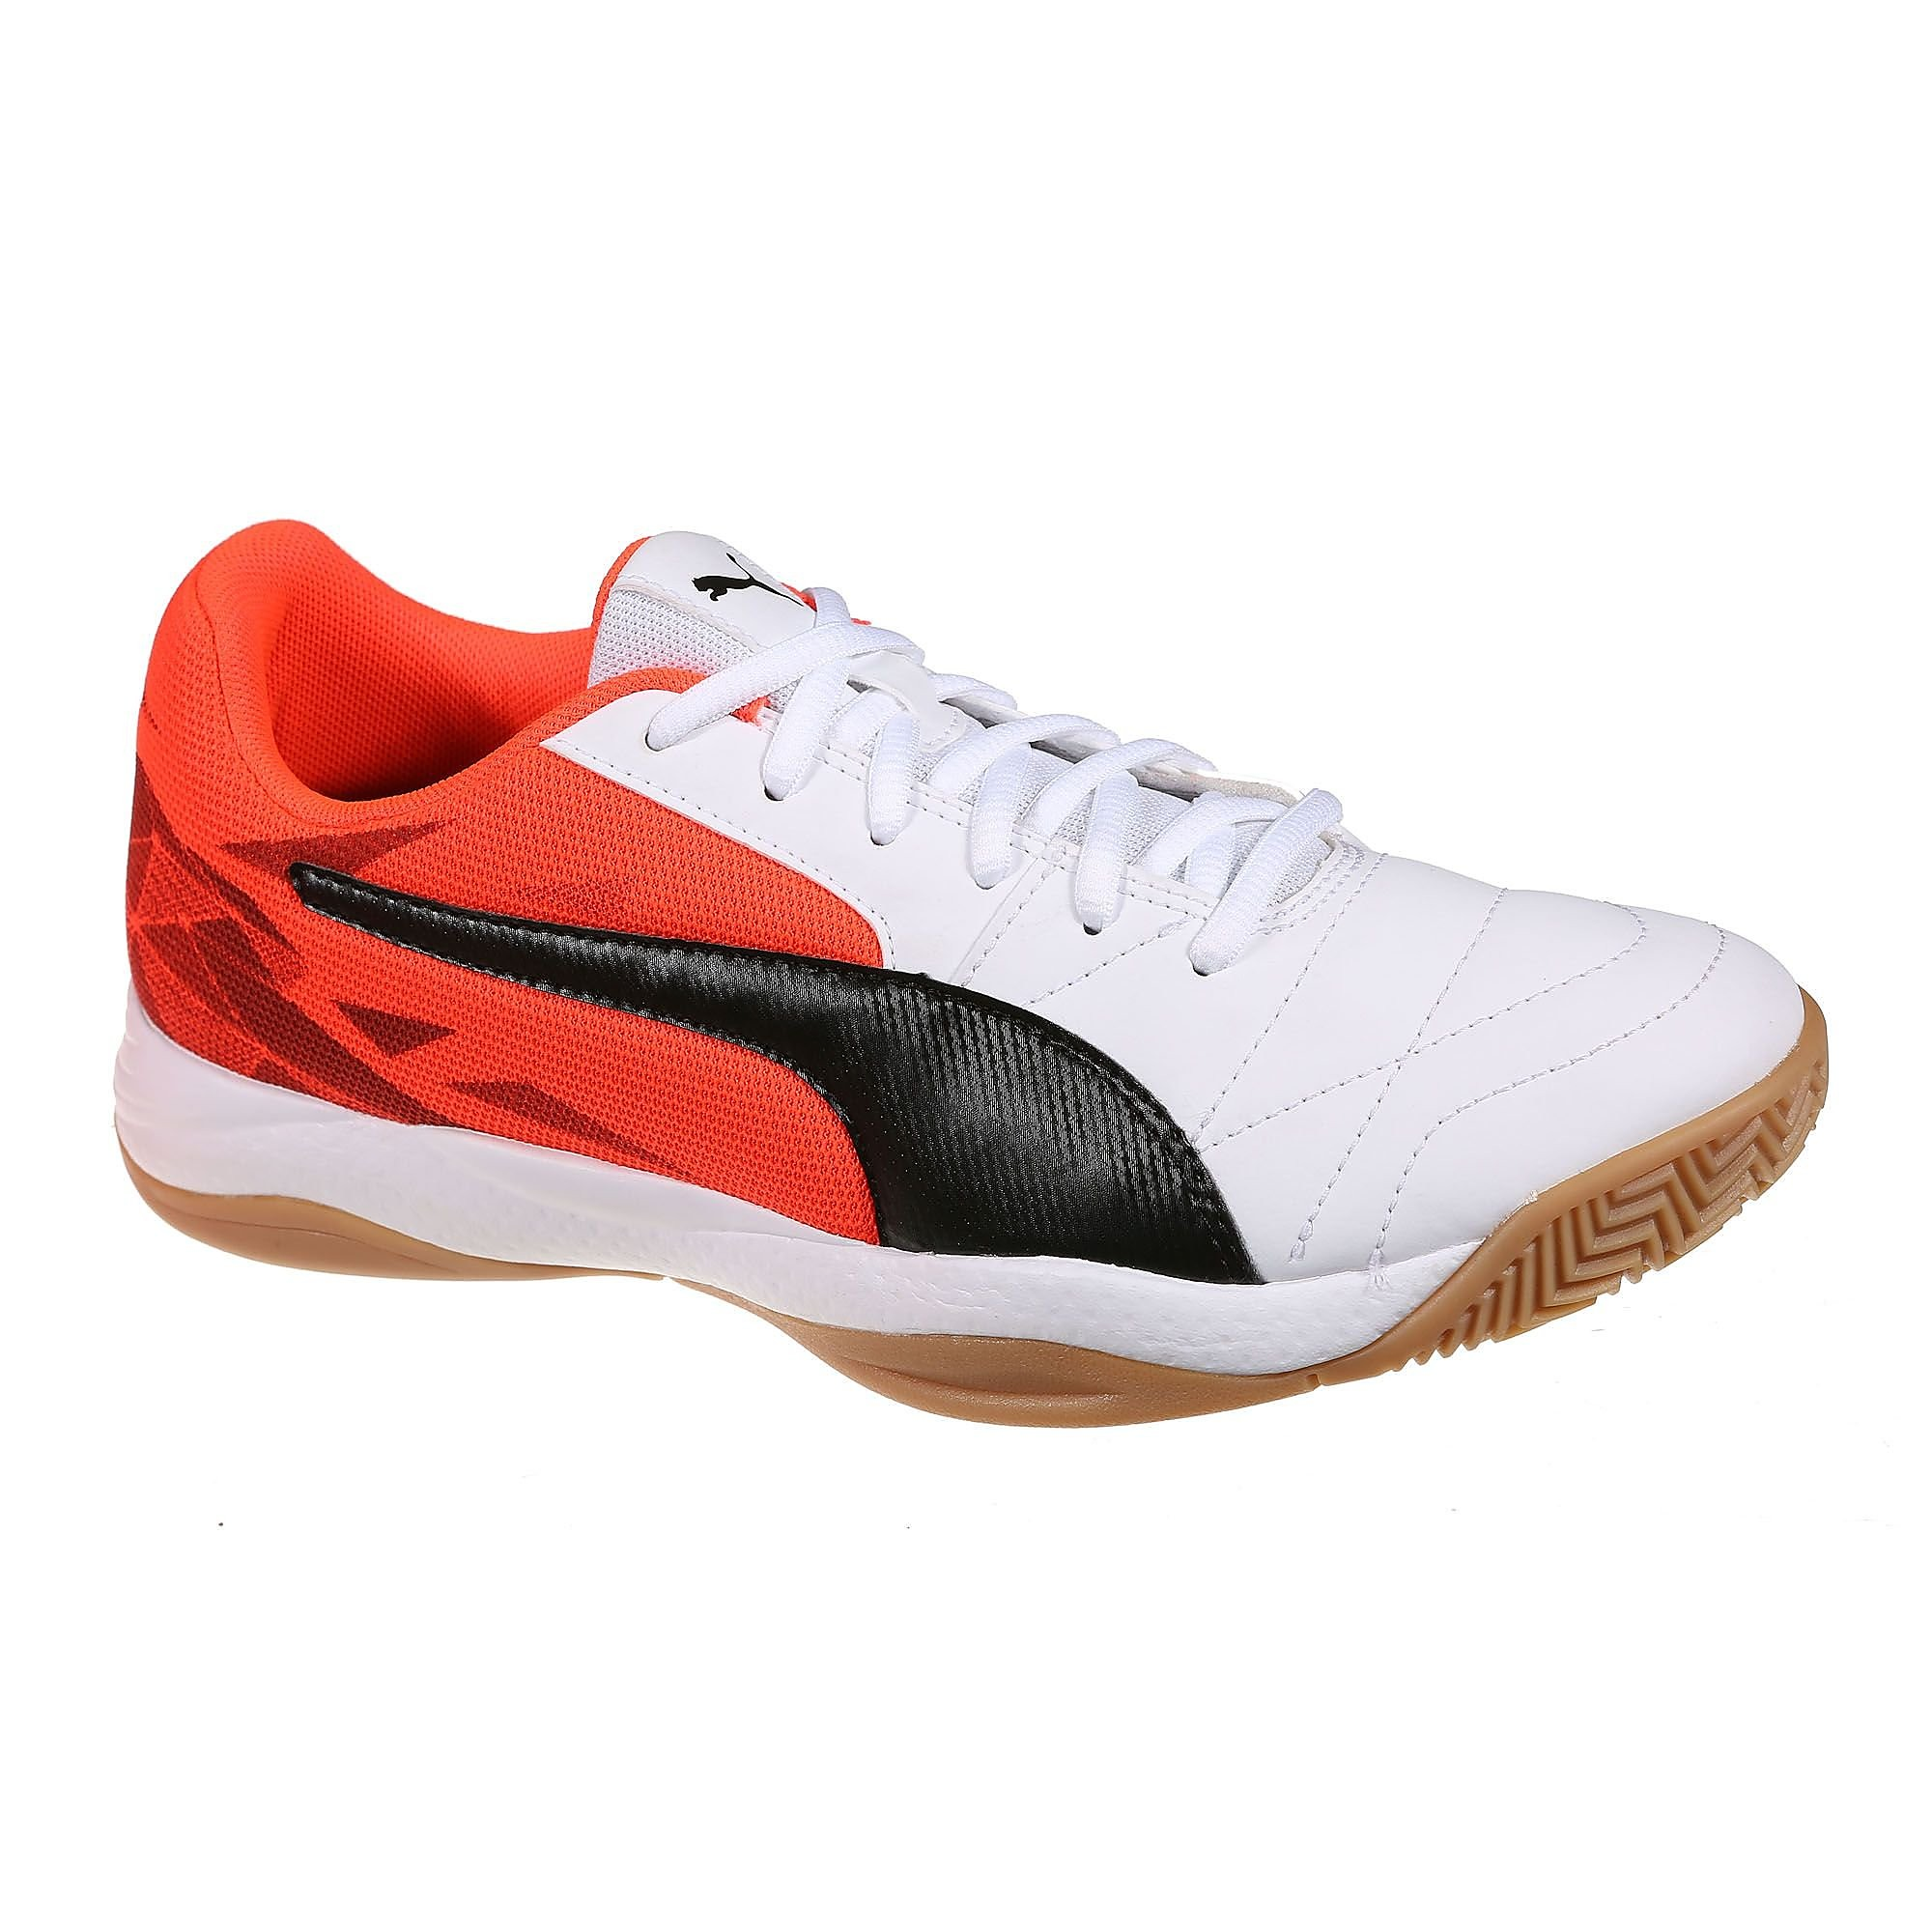 PUMA VELOZ INDOOR 3 JR